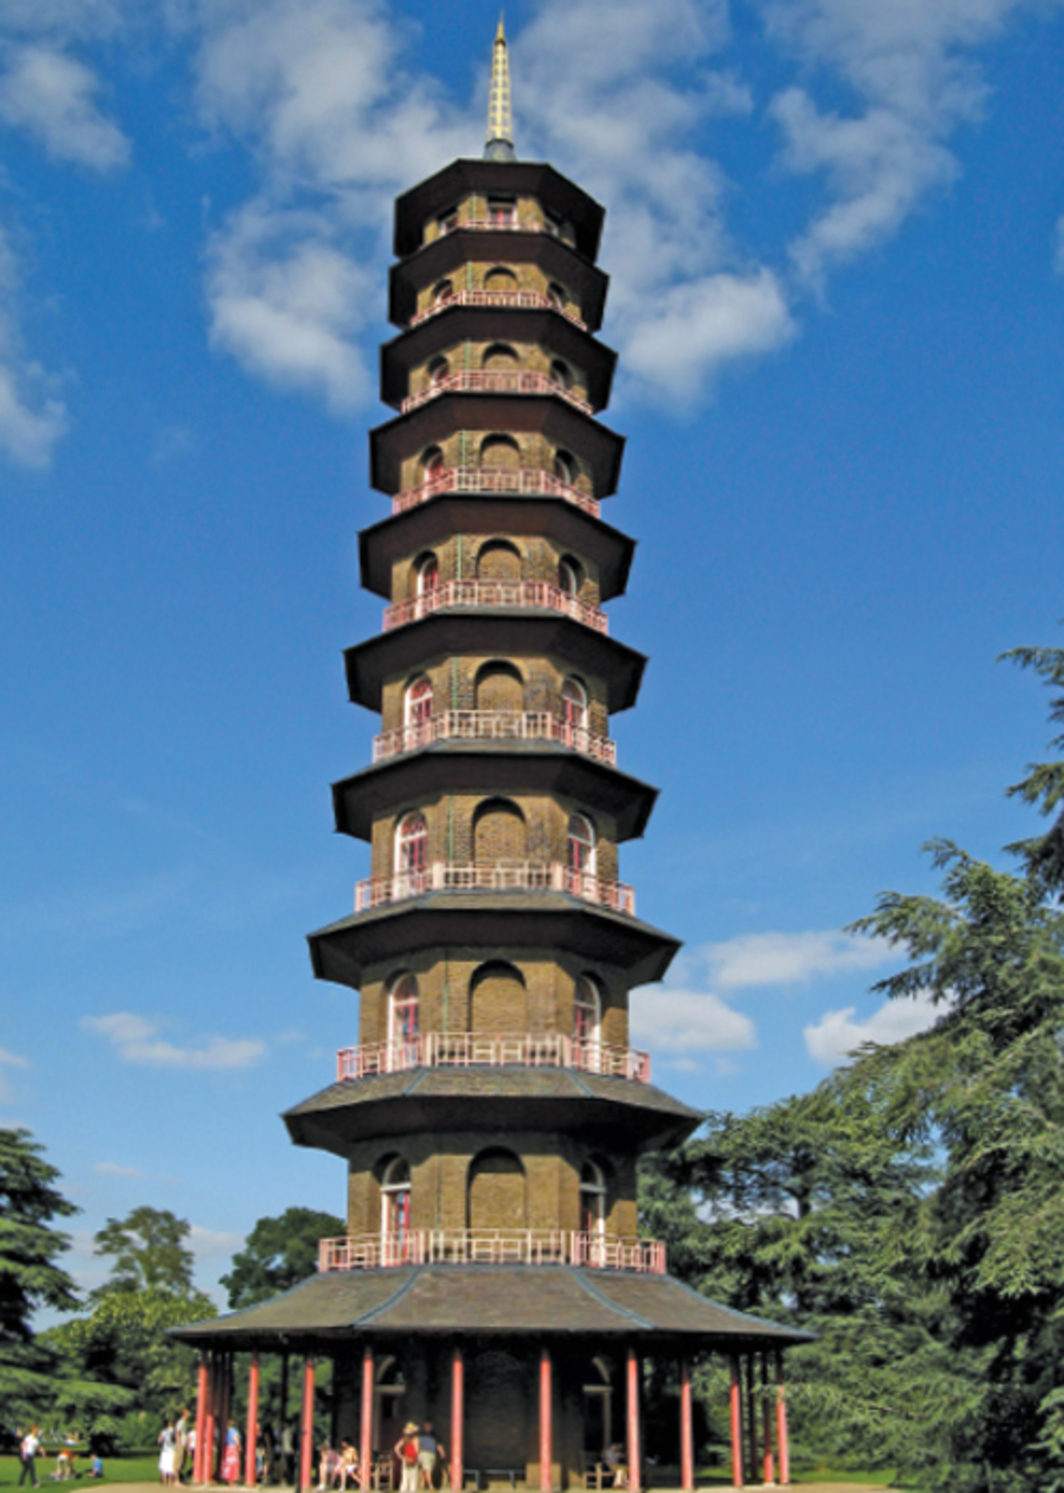 Sir William Chambers, Chinese Pagoda, 1762, Royal Botanic Gardens, Kew, London. Photo: C. Lansley/Flickr.